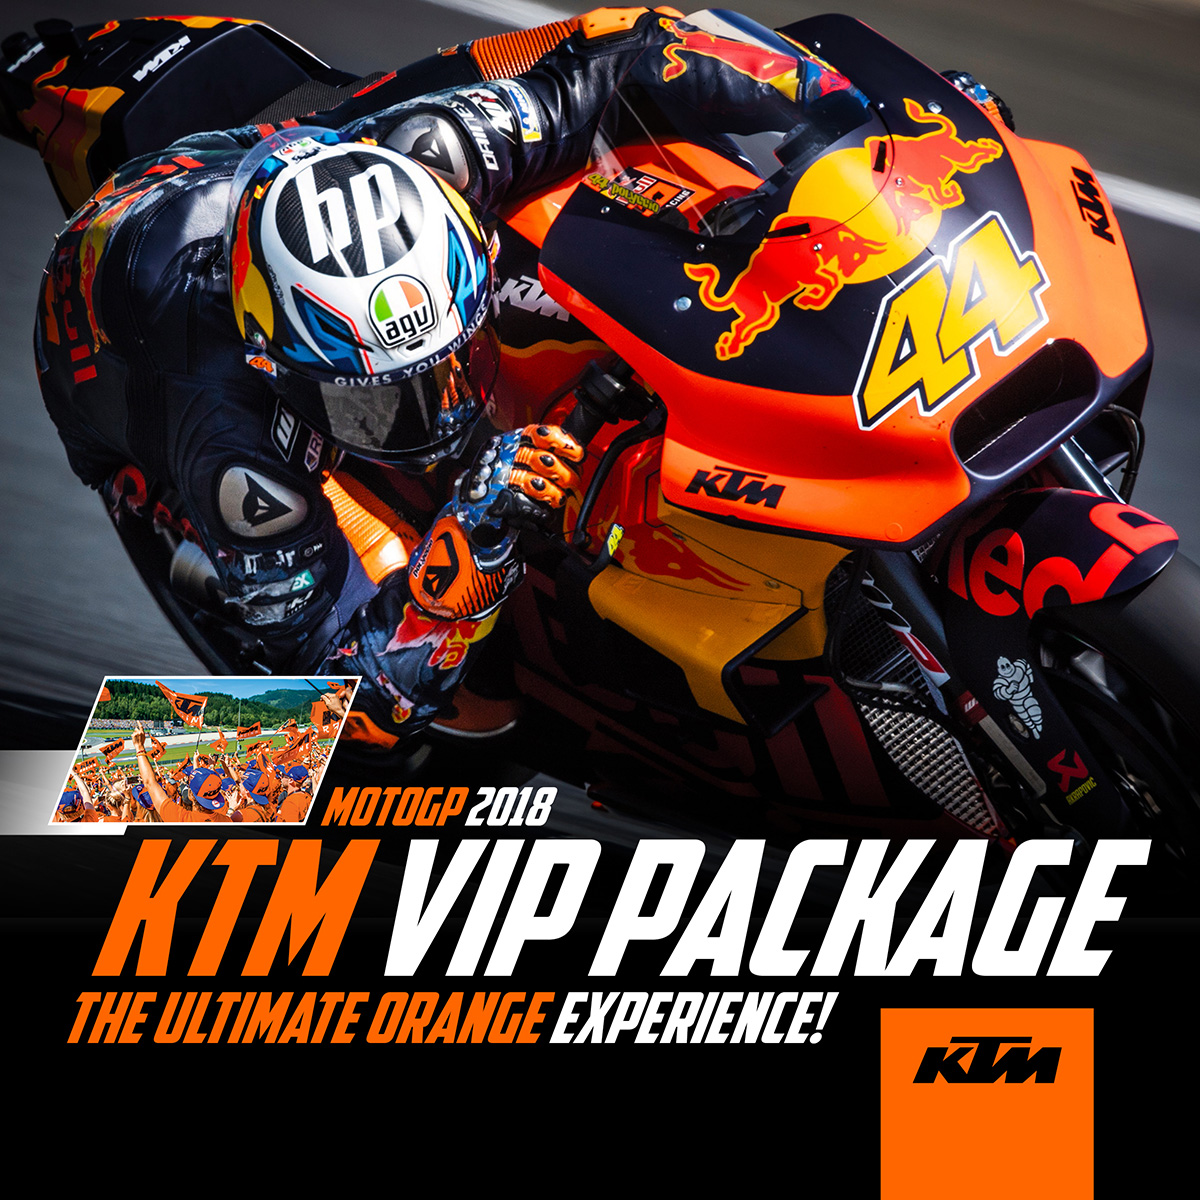 KTM VIP Package: MotoGP 2018